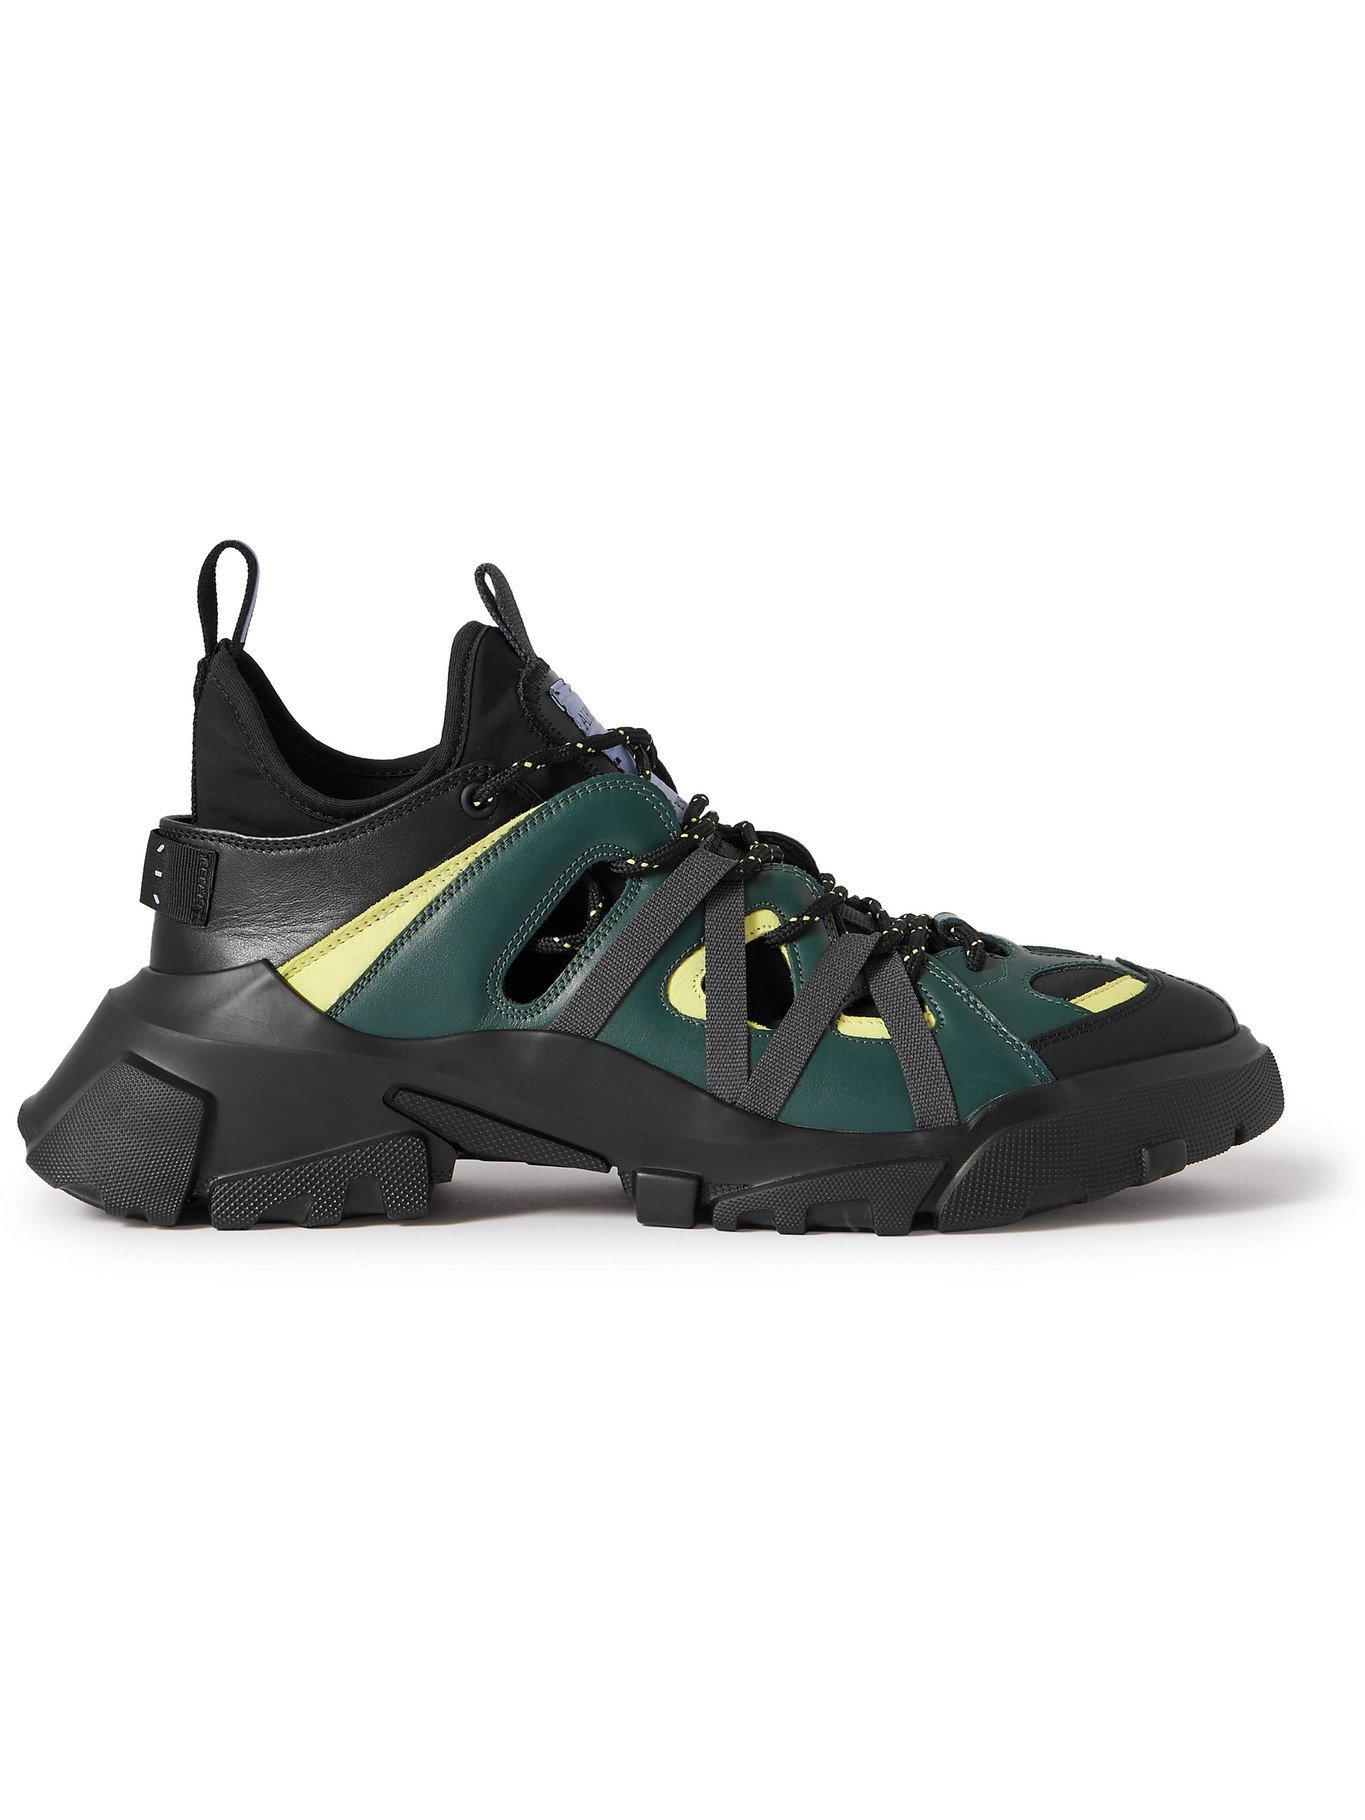 MCQ - Albion 4 Orbyt Descender Panelled Faux Leather Sneakers - Green - EU 40